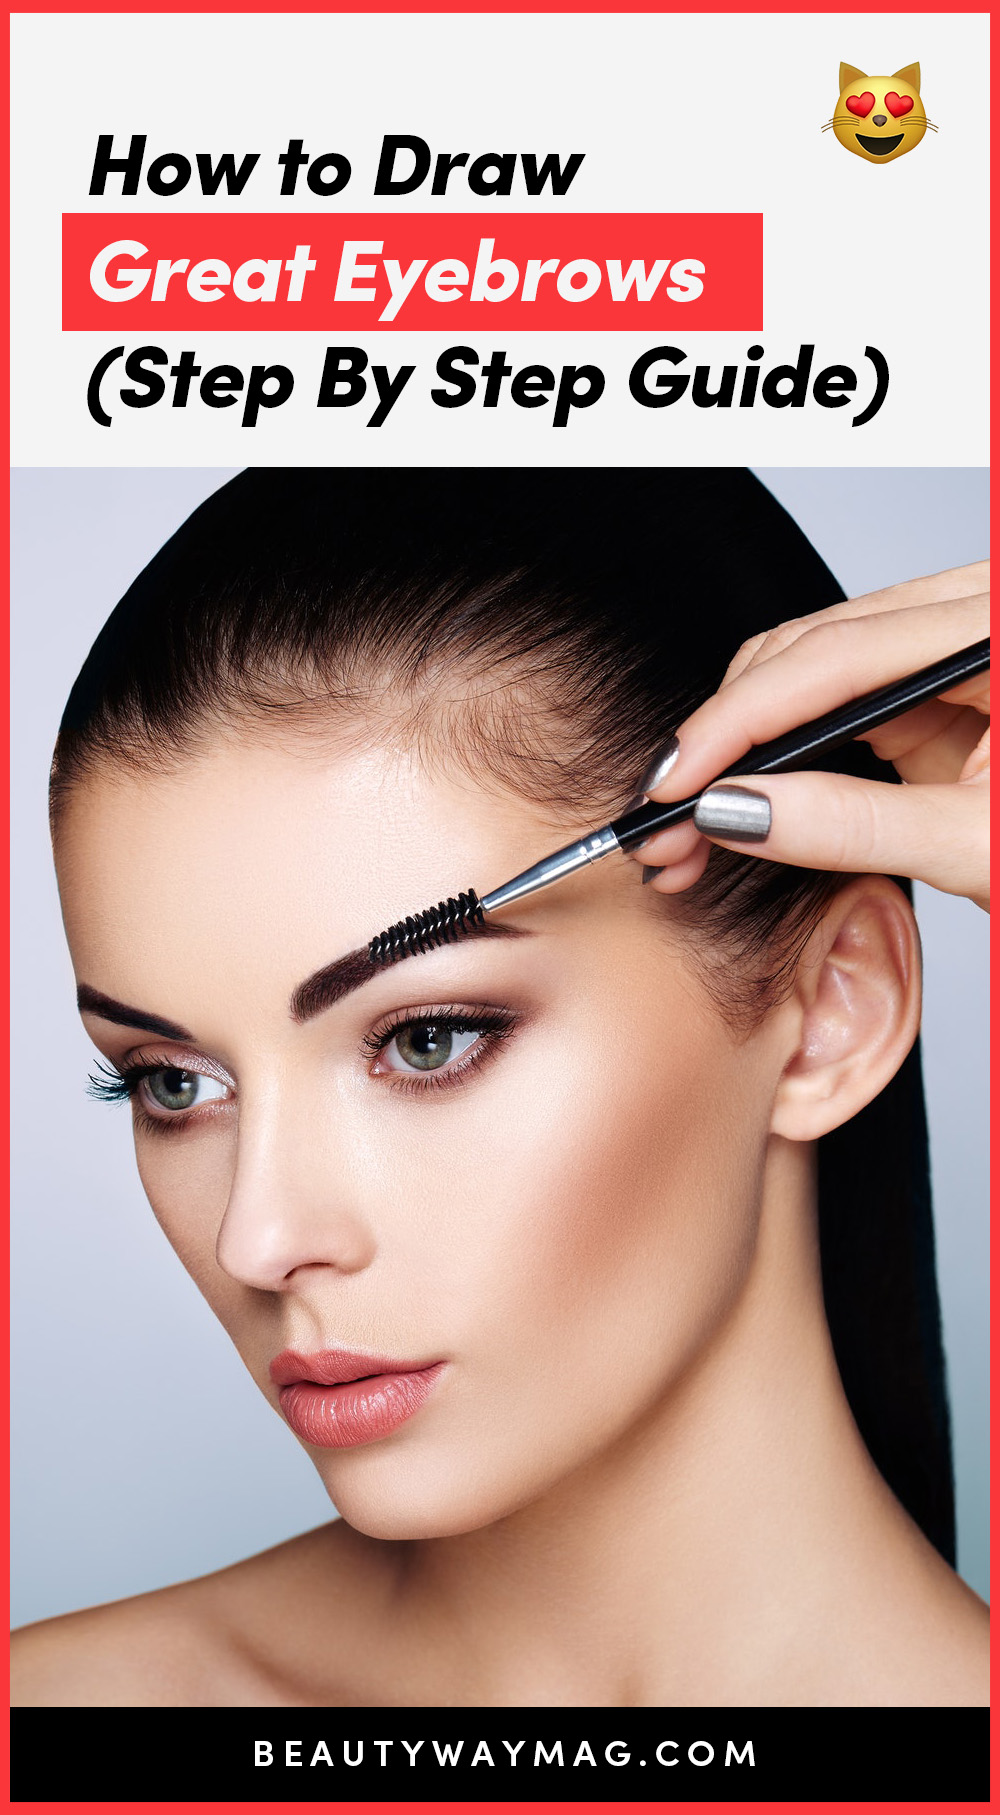 How to draw great eyebrows